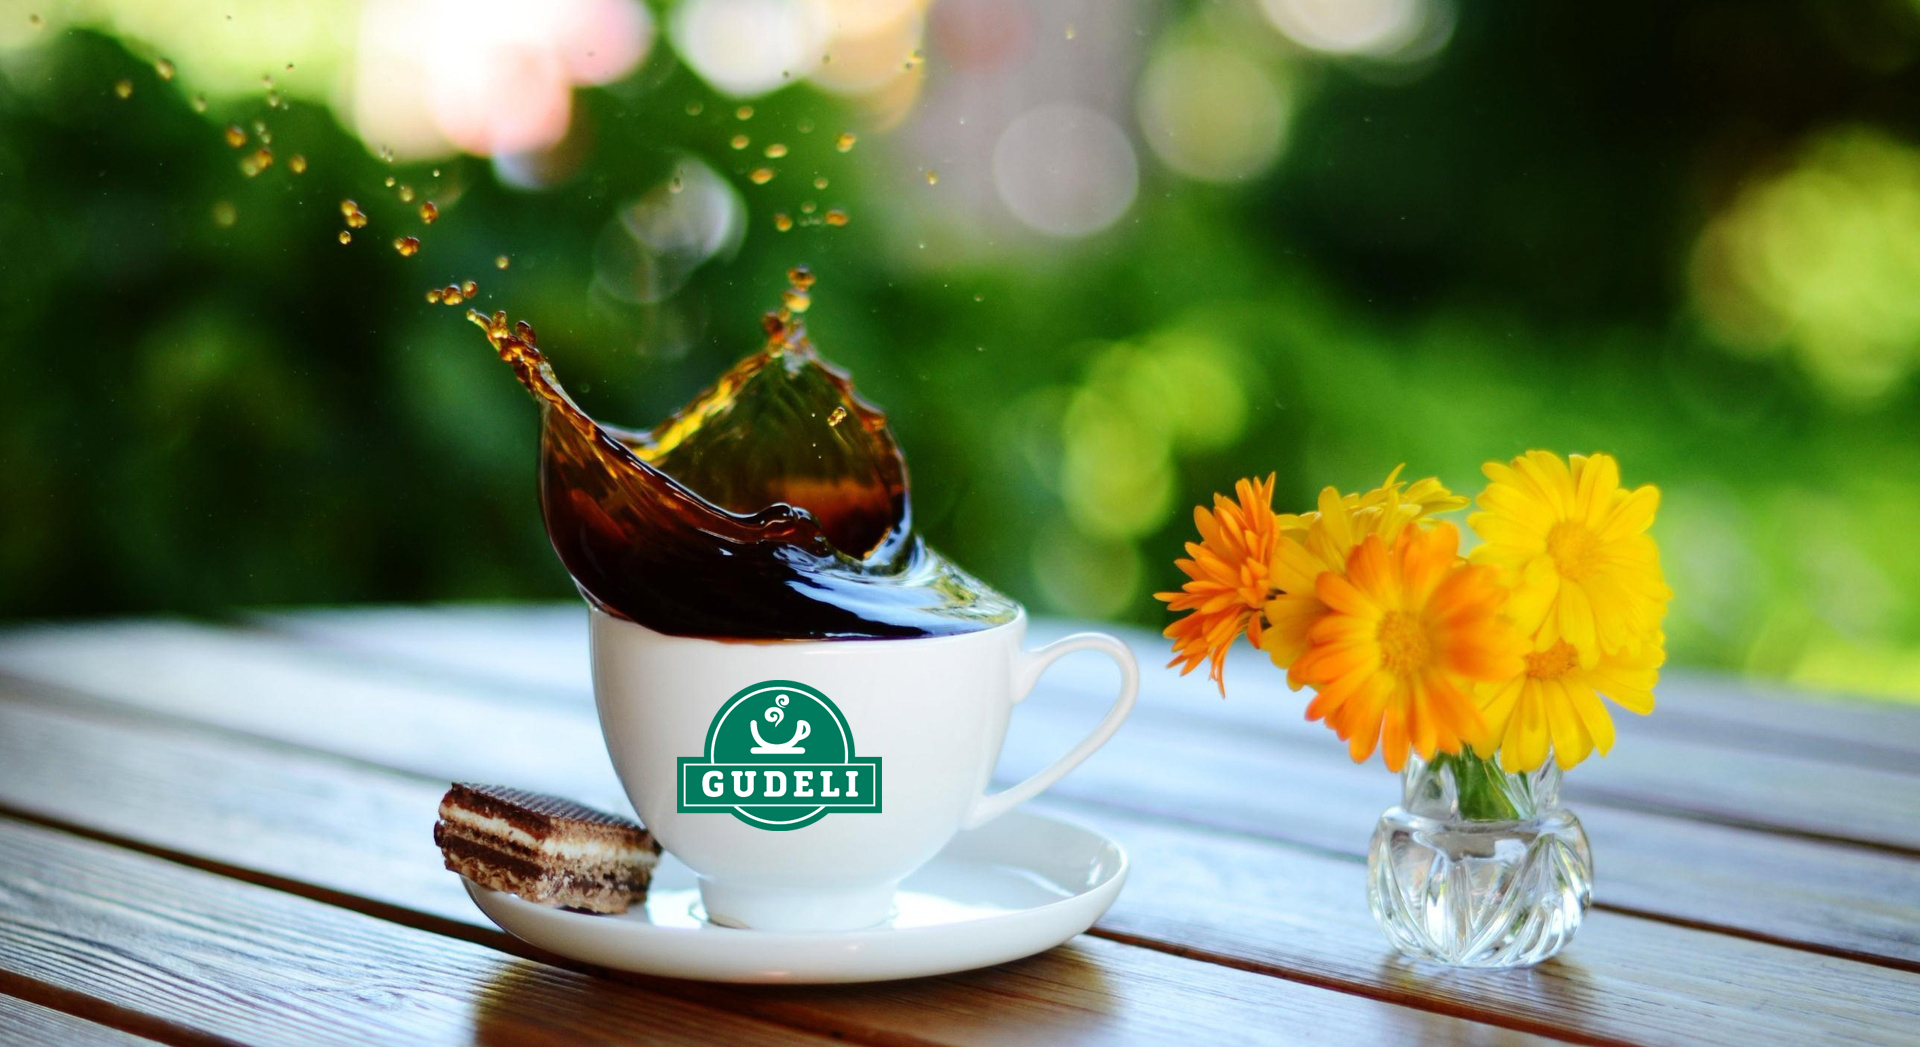 gudeli your coffee